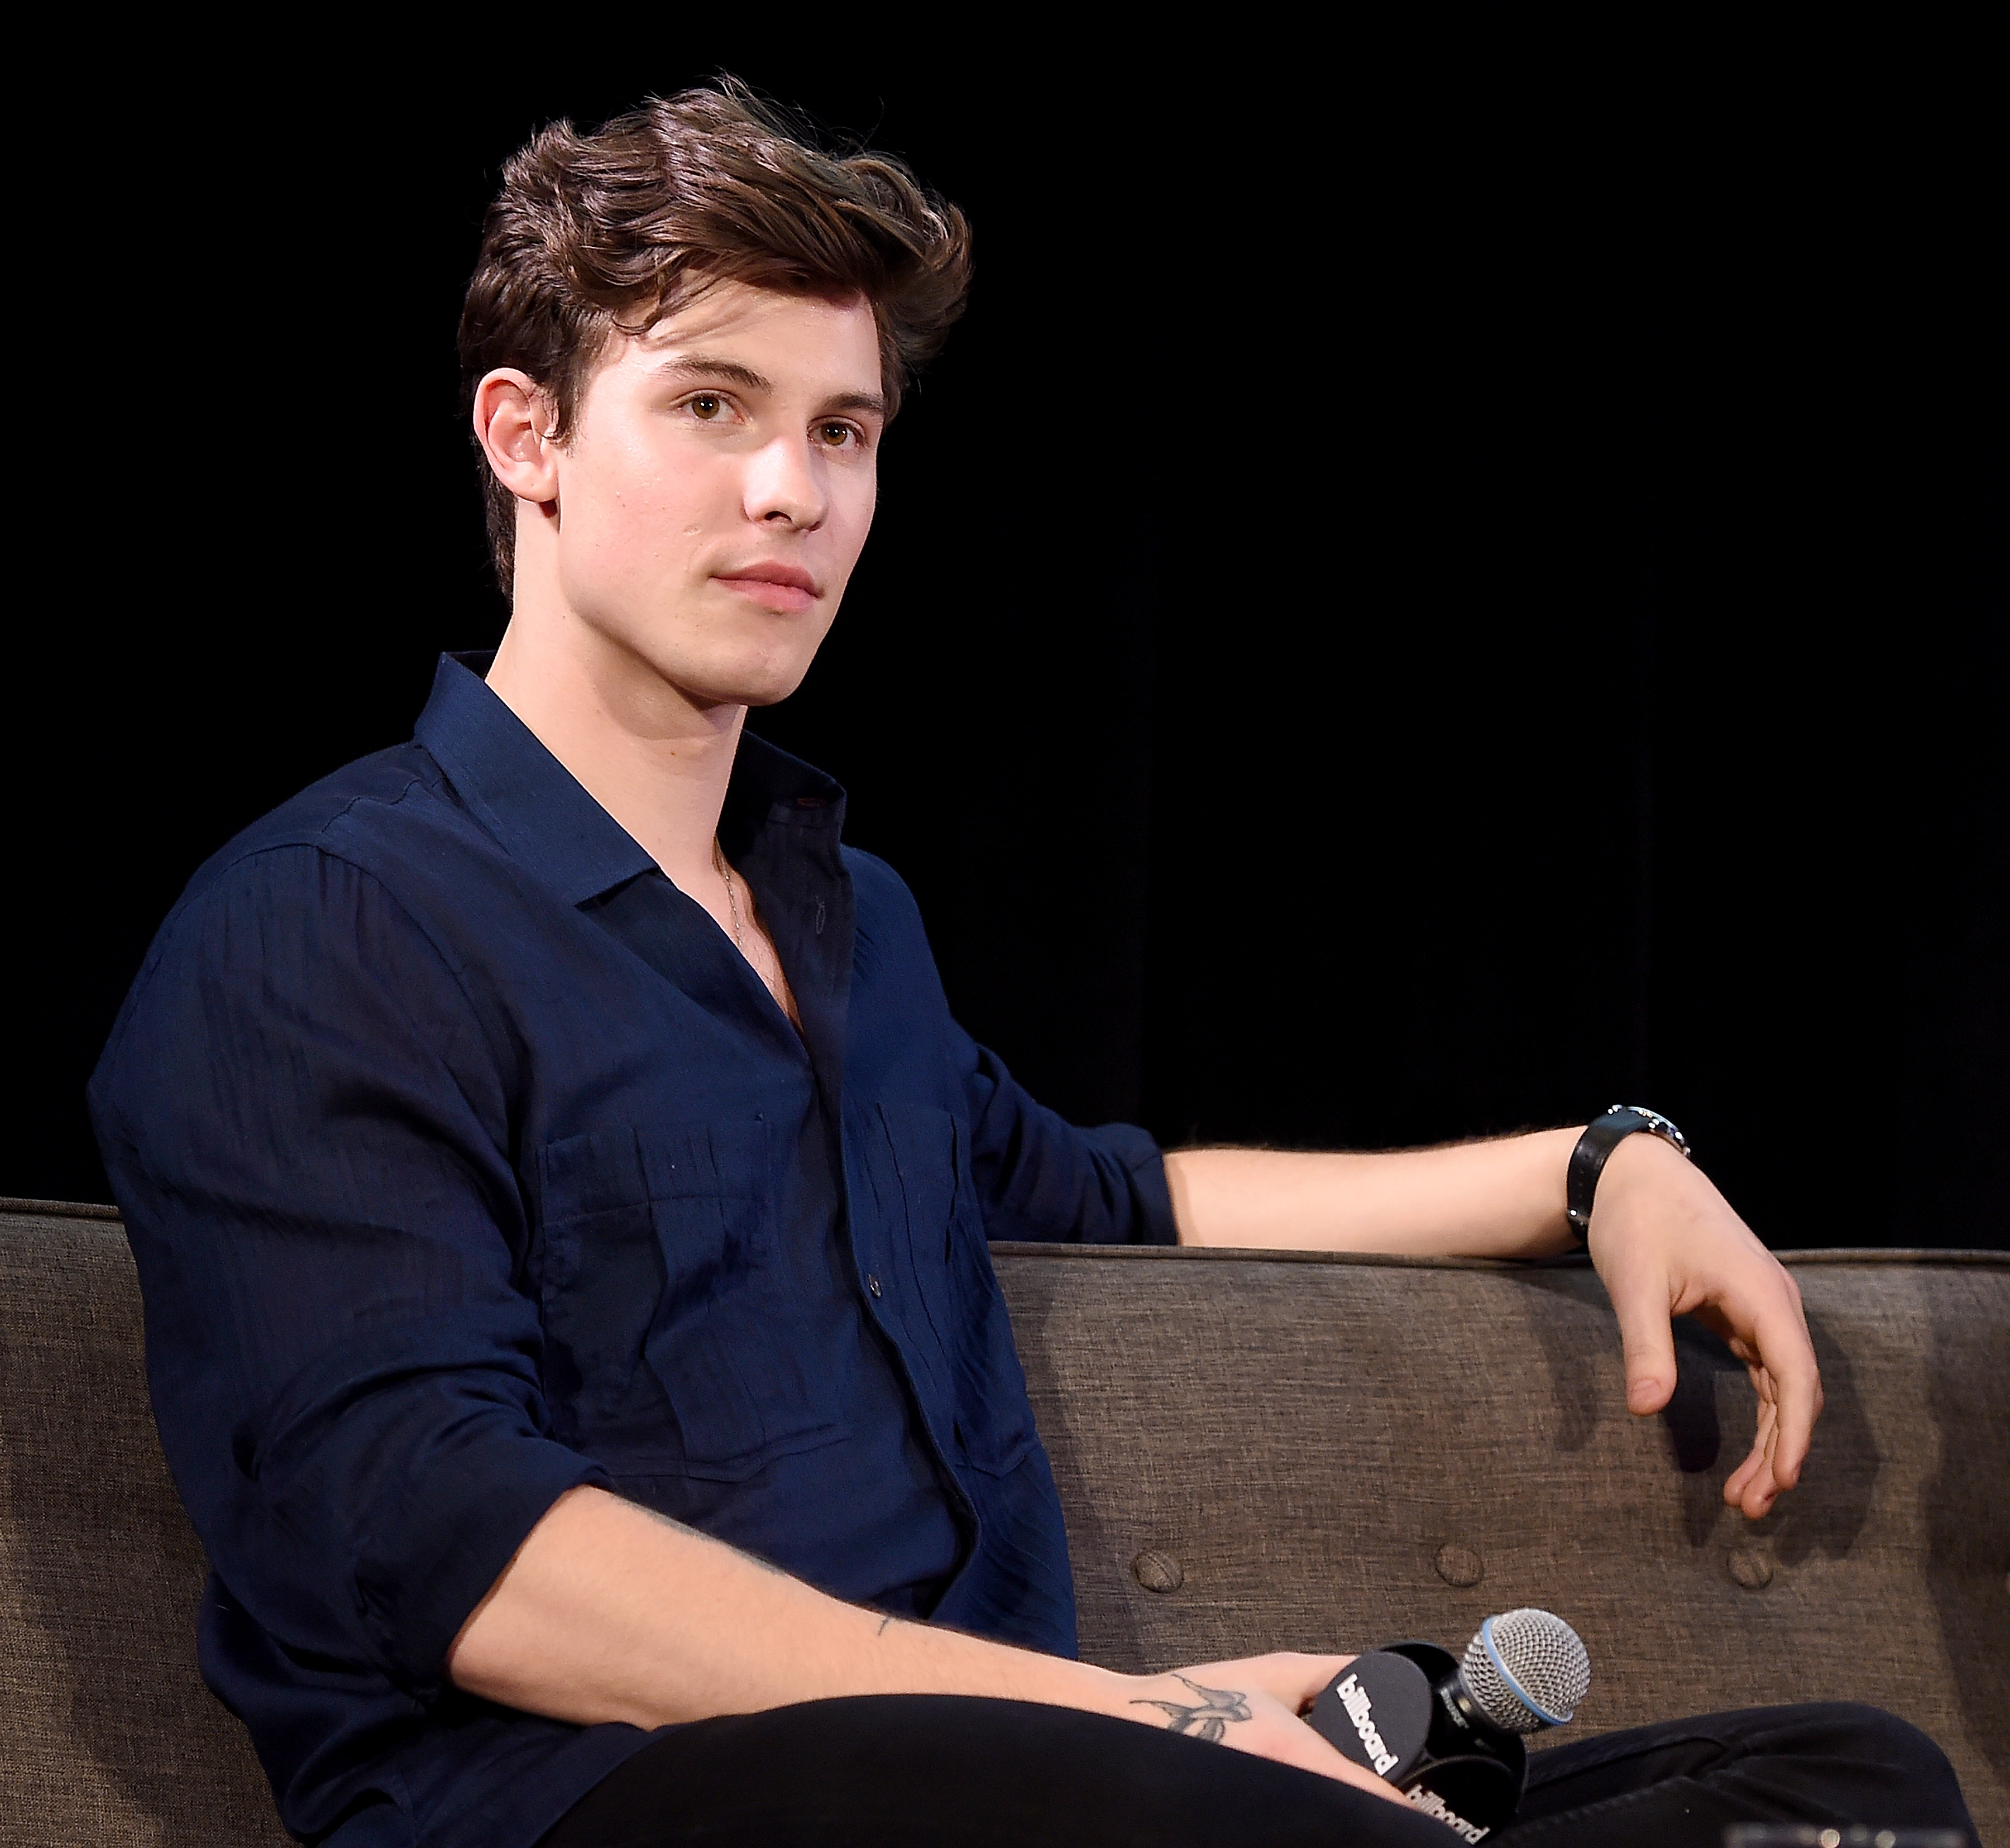 Shawn Mendes attends the Billboard's 2018 Live Music Summit Panels